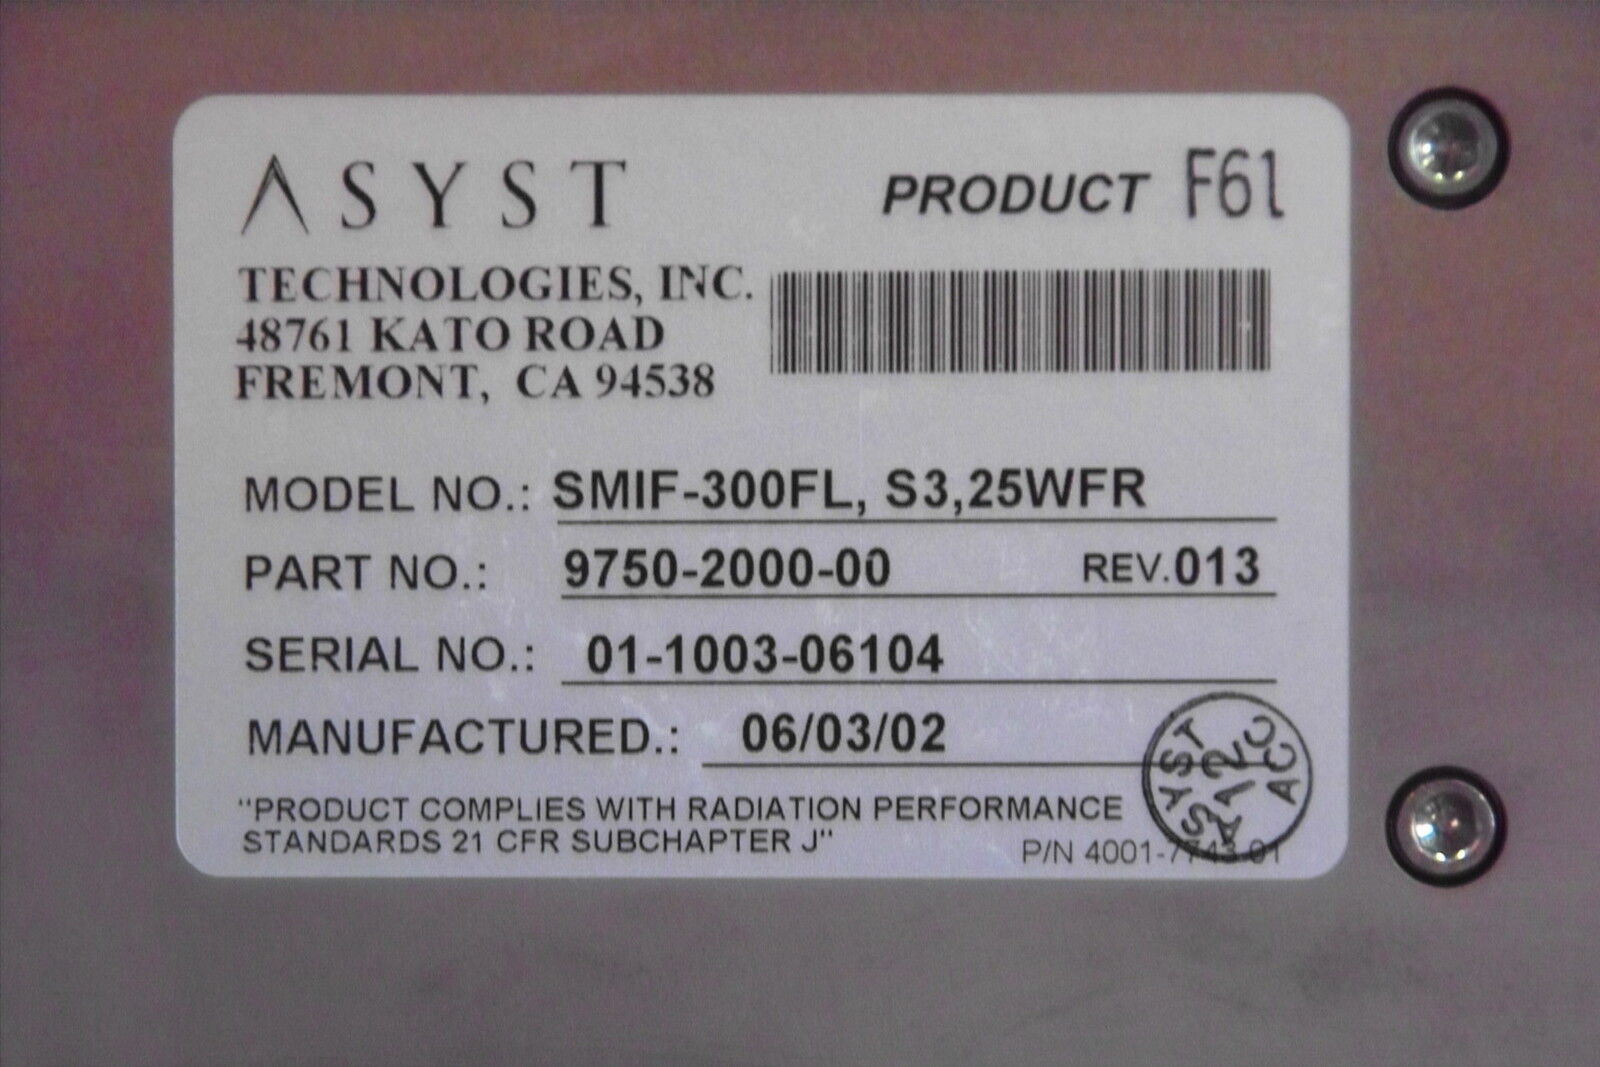 ASYST 300mm WAFER,LOAD PORT SMIF-300FL,S3,25WFR,9750-2000-00